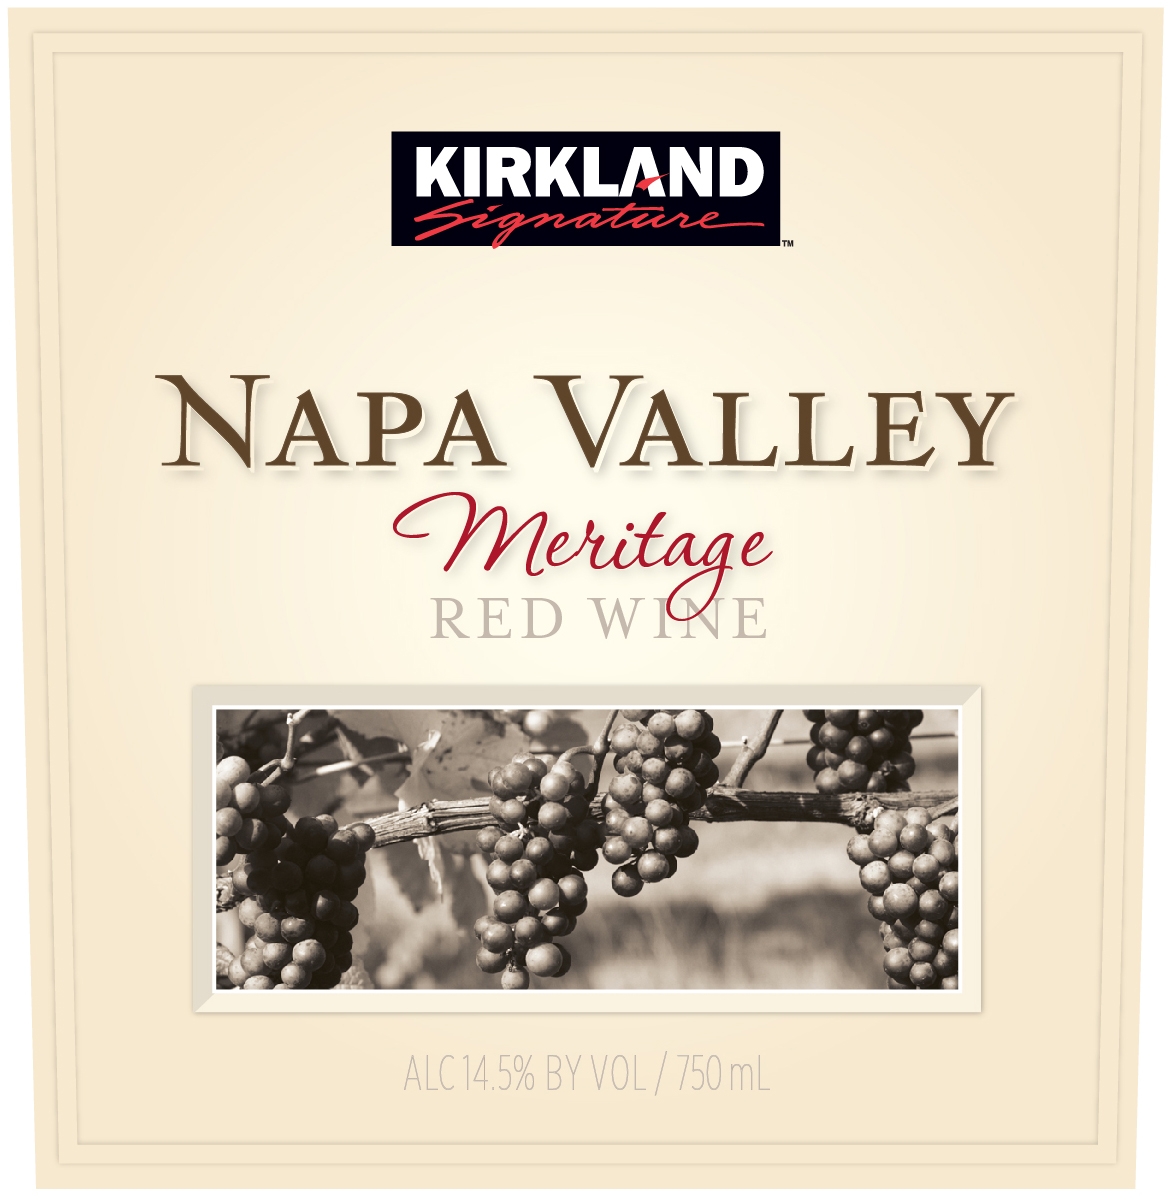 A combination of classical varietals combine to create a finely nuanced blend from the well-drained gravelly loams and silt soils of Napa Valley.  This Meritage has the concentrated notes of black cherry and cassis supported by silky tannins and the spice rack notes of oak and cedar finishing with the velvety notes of rich plum.